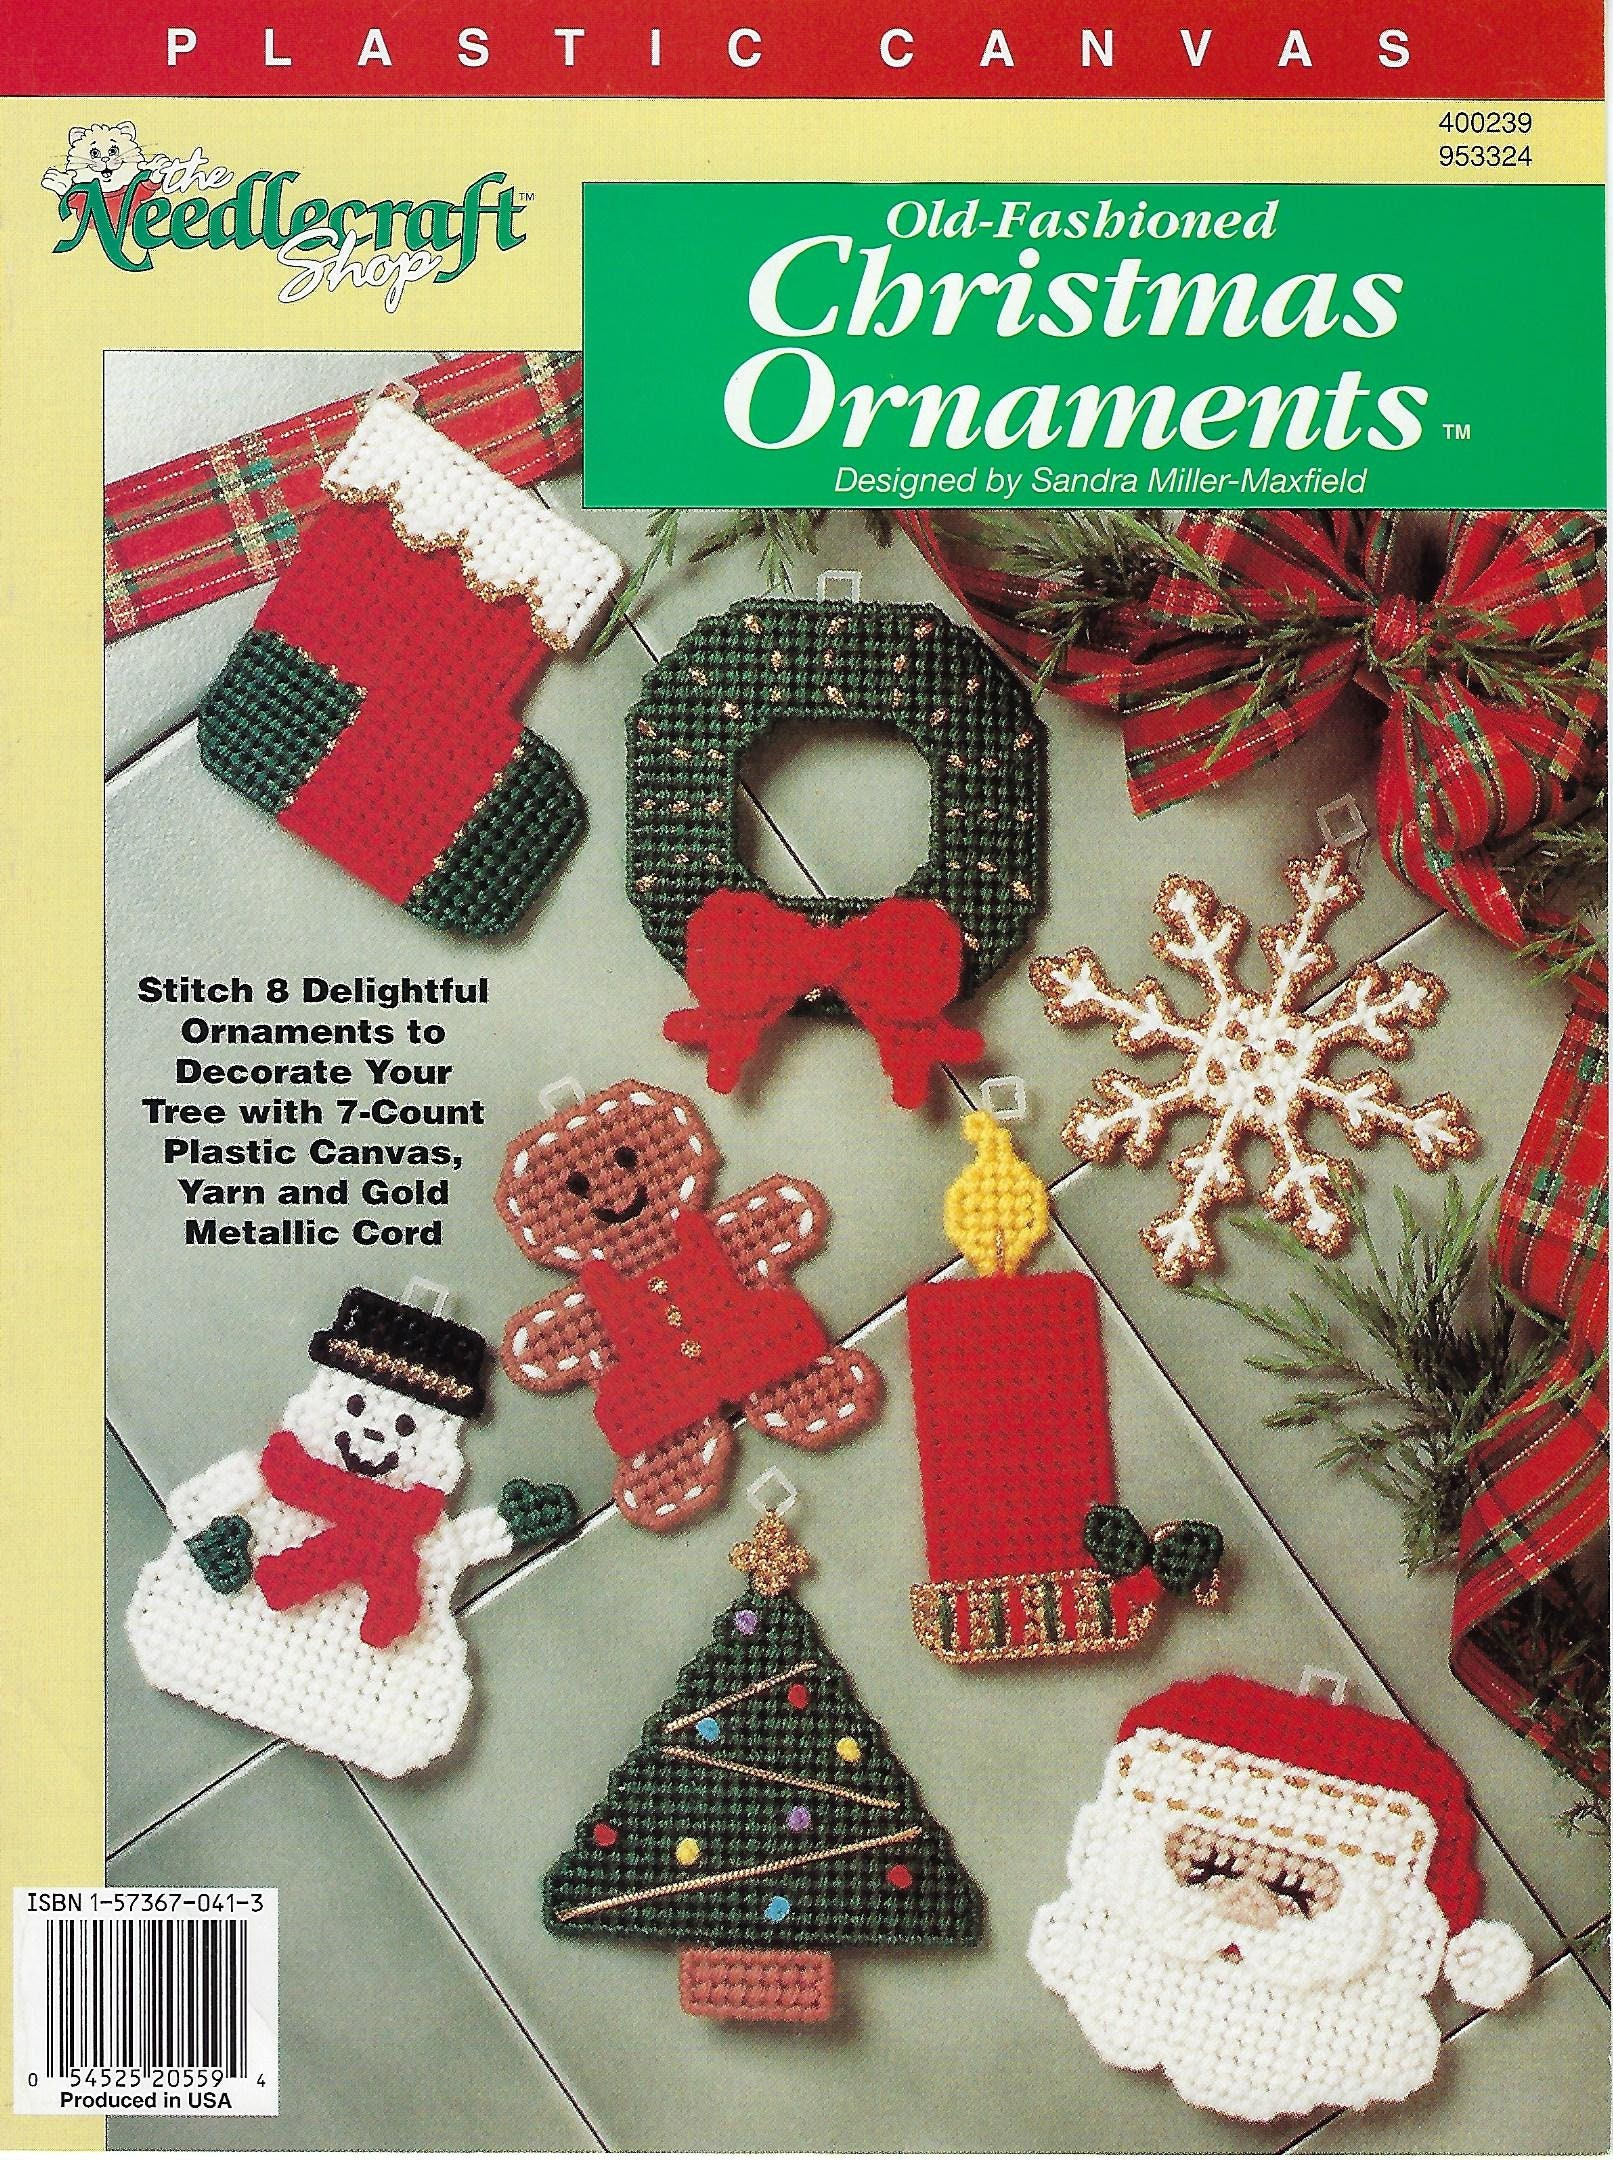 Plastic Canvas Pattern Old Fashioned Christmas Ornaments | Etsy